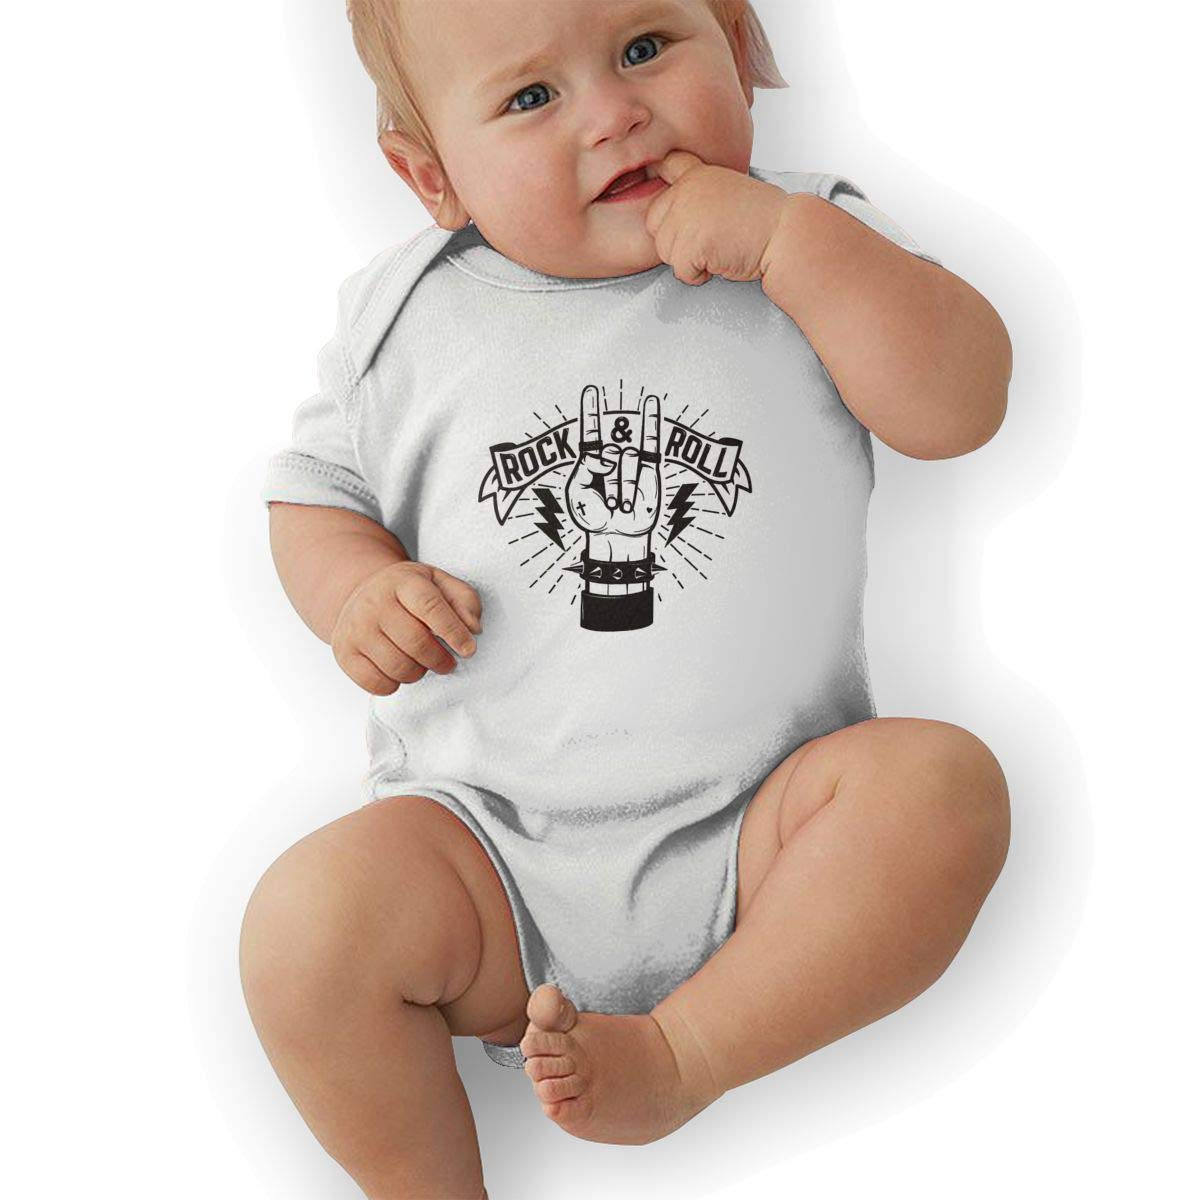 Newborn Baby Girls Bodysuit Short-Sleeve Onesie Rock Roll and Peace Love Print Outfit Winter Pajamas